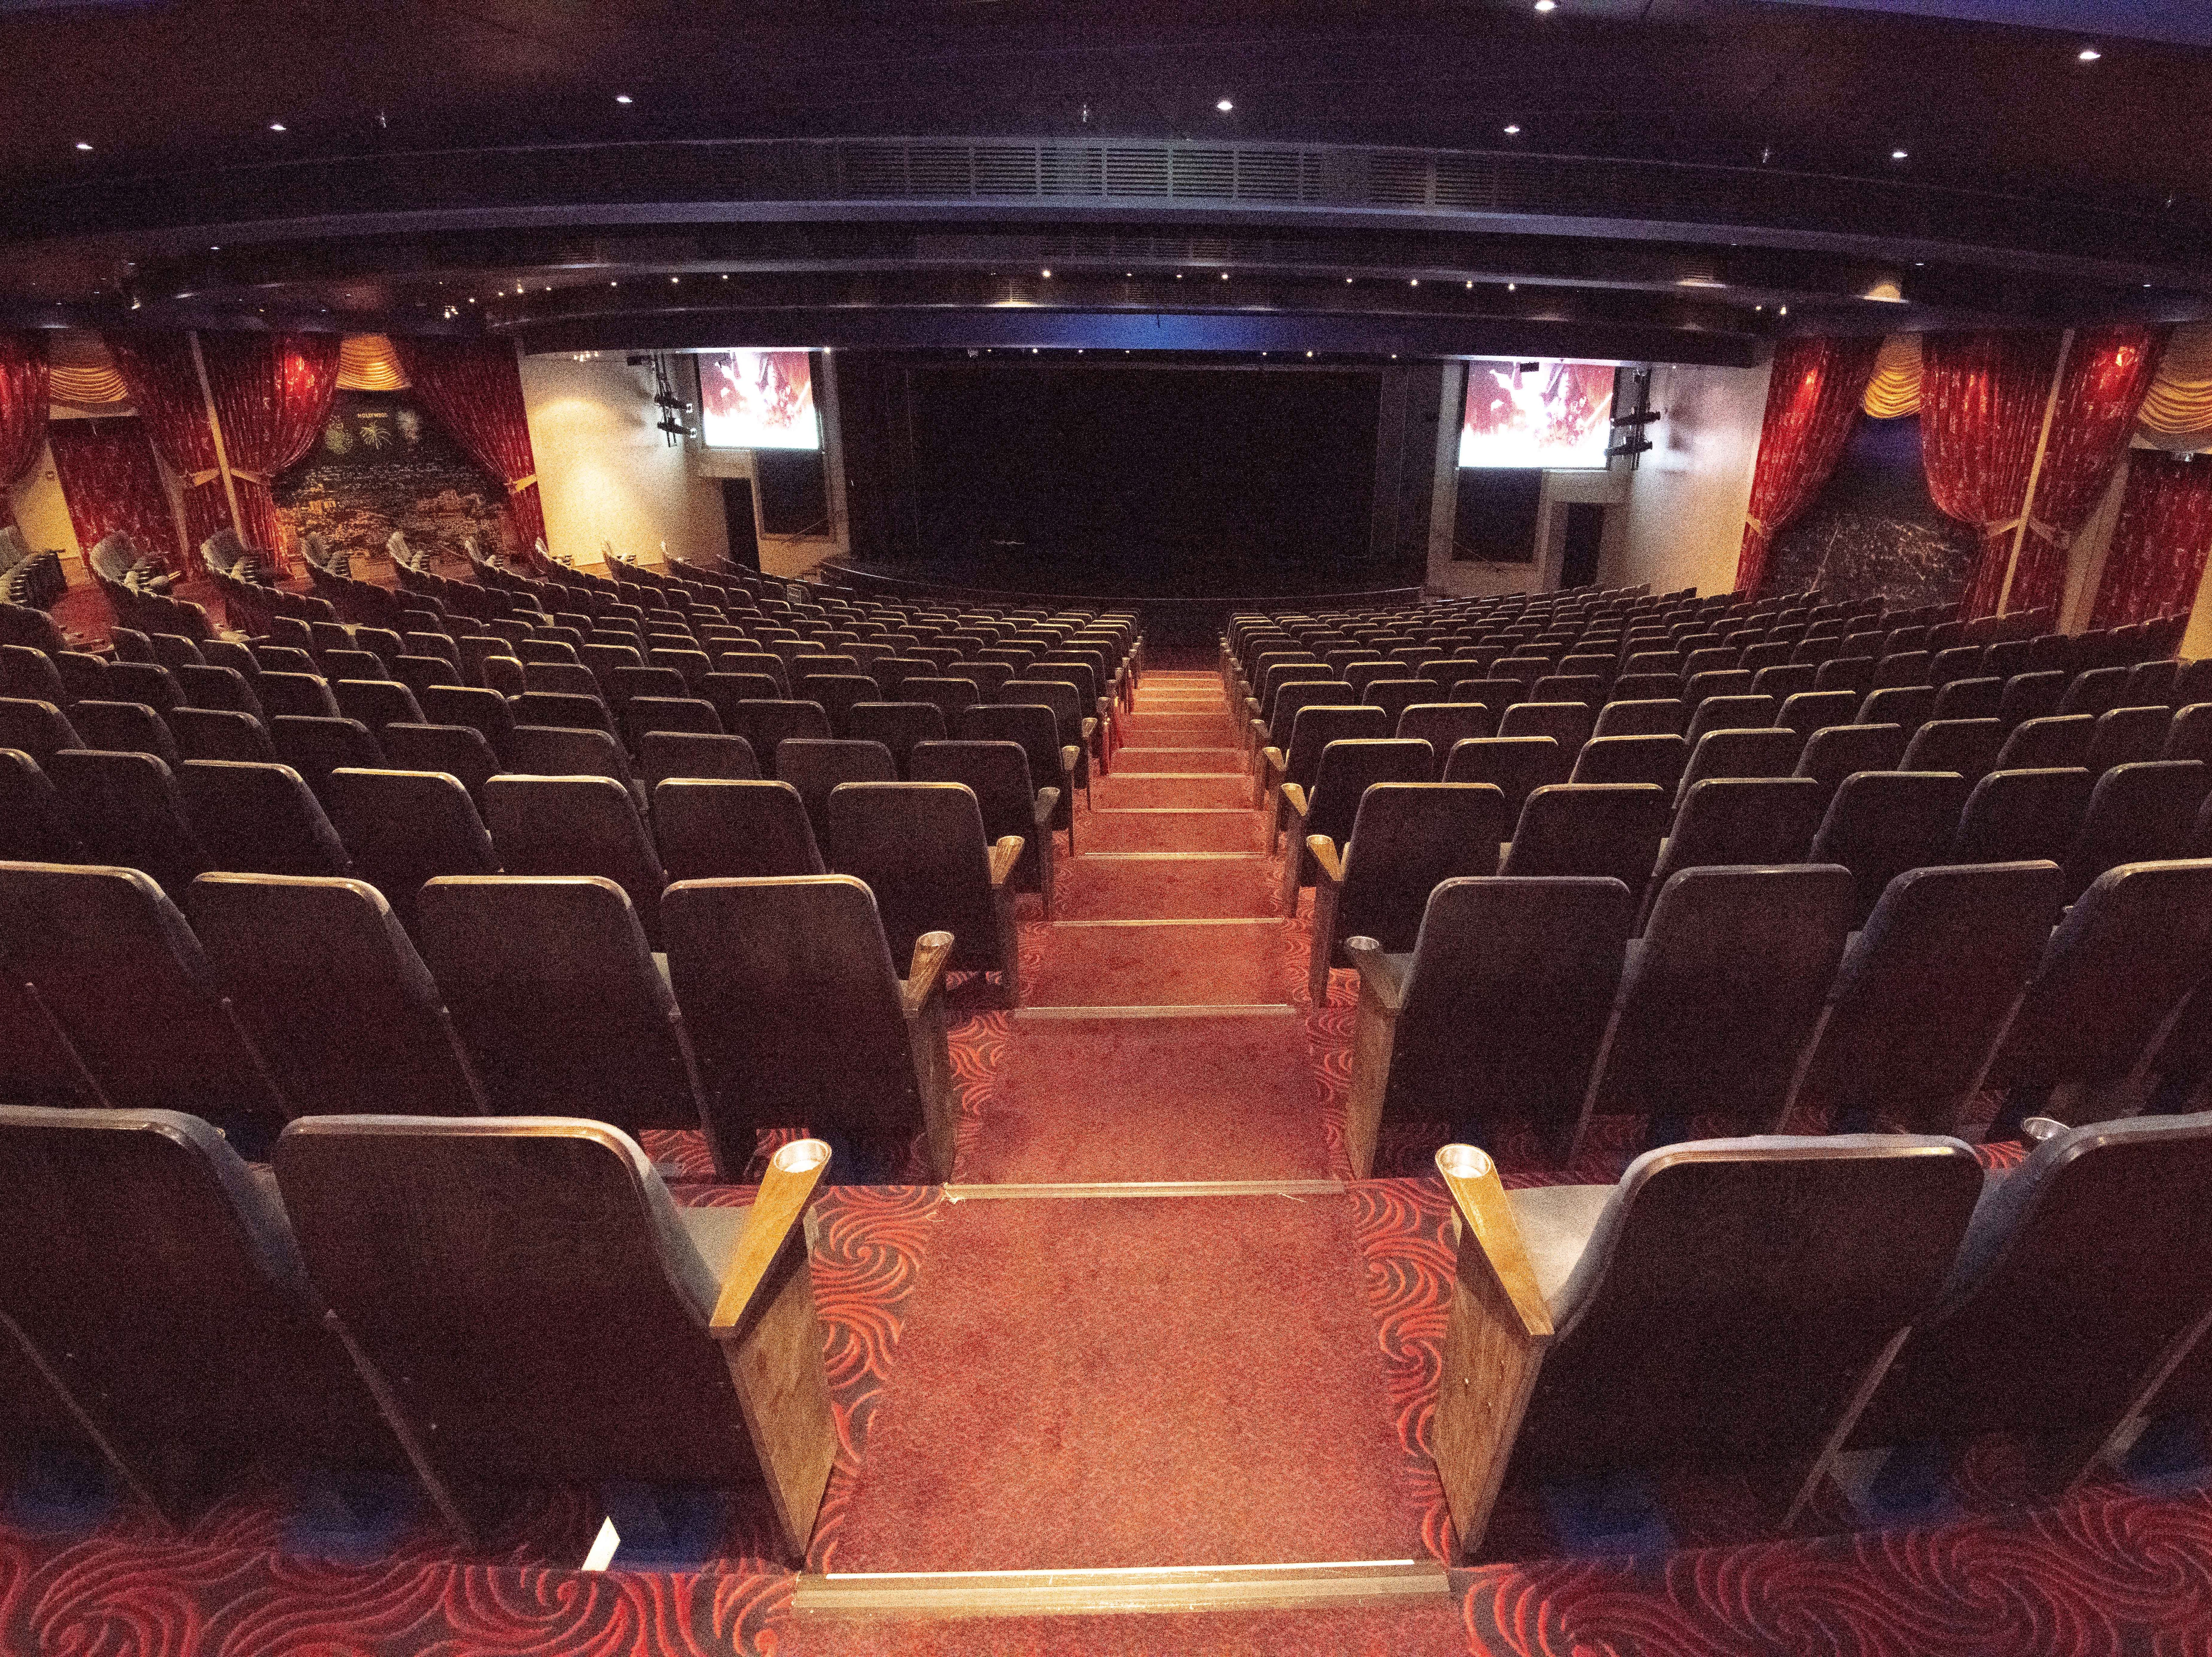 Pride of America's main entertainment venue is the Hollywood Theater, which can seats 880 passengers at a time. It's located at the front of the ship on Deck 5.